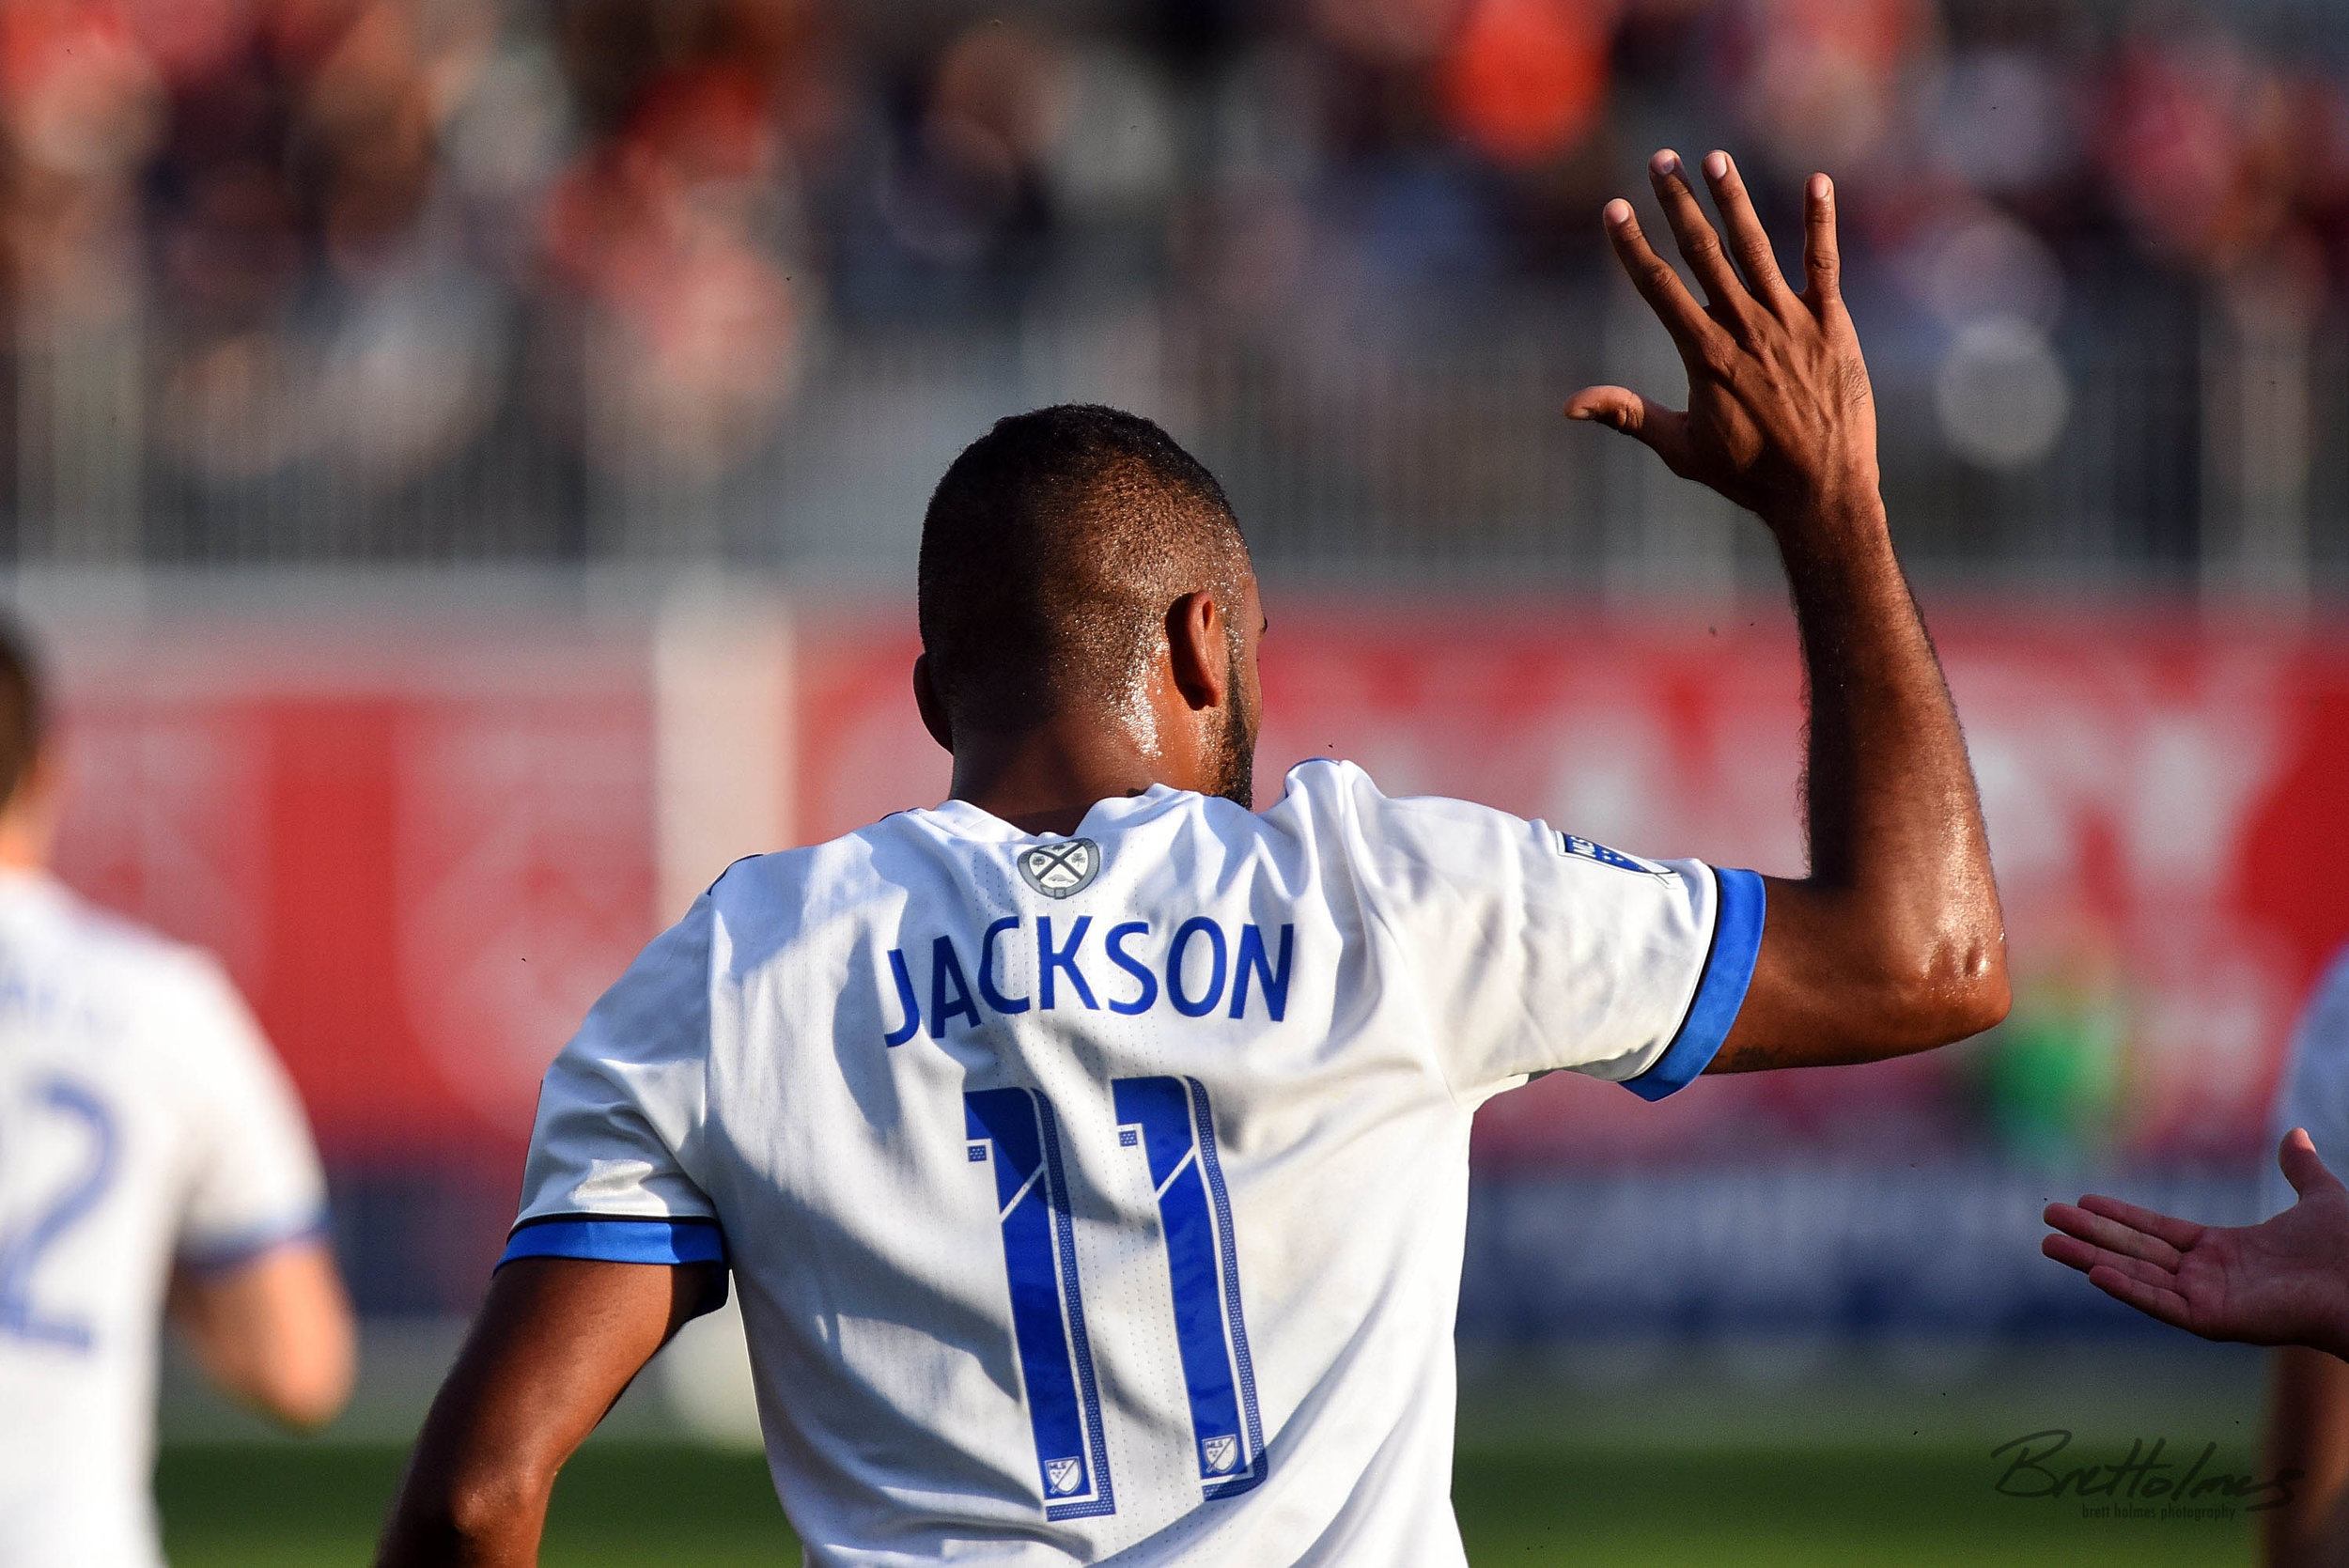 CALGARY, AB - AUGUST 14: Montreal Impact forward Anthony Jackson-Hamel (11) celebrates after scoring a goal during the first half of the second leg of a Canadian Championship semifinal match between the Montreal Impact and Cavalry FC on August 14, 2019, at ATCO Field at Spruce Meadows in Calgary, AB. (Photo by Brett Holmes/Icon Sportswire)